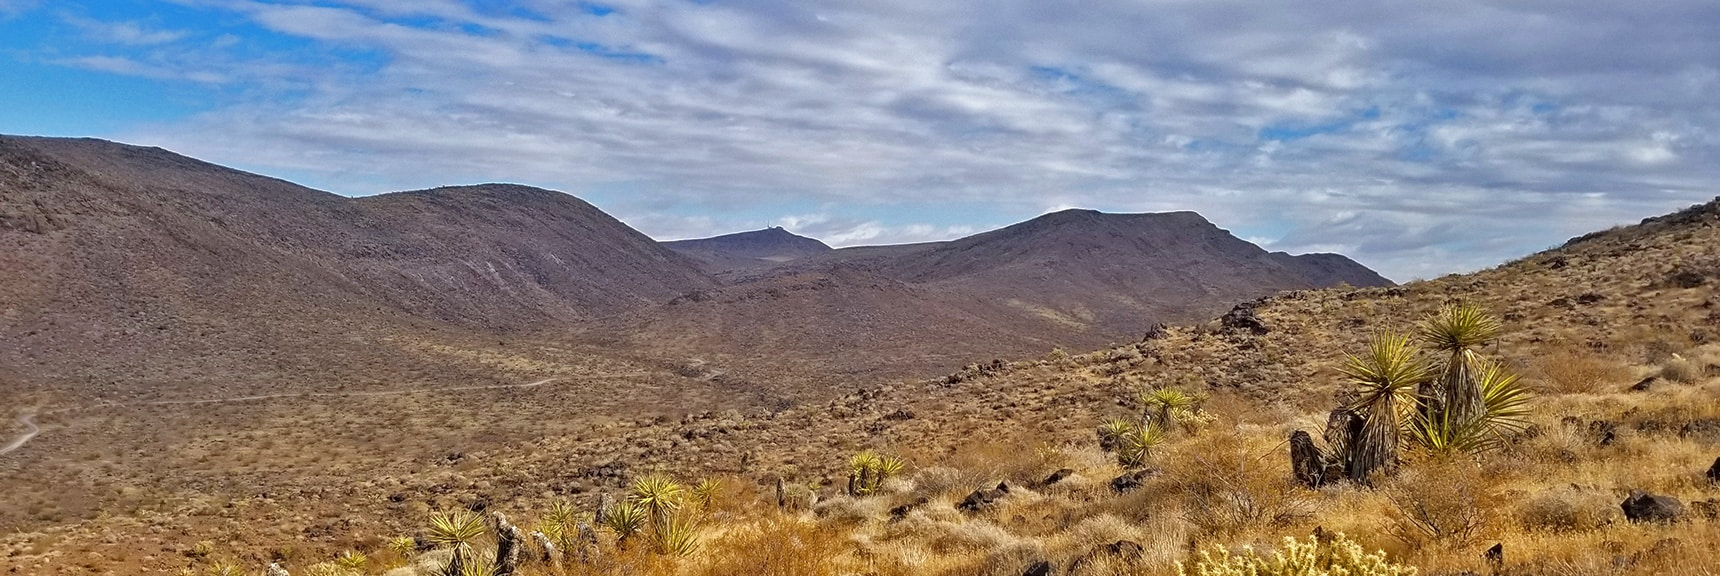 Looking Back Toward the Trailhead   McCullough Hills Trail in Sloan Canyon National Conservation Area, Nevada